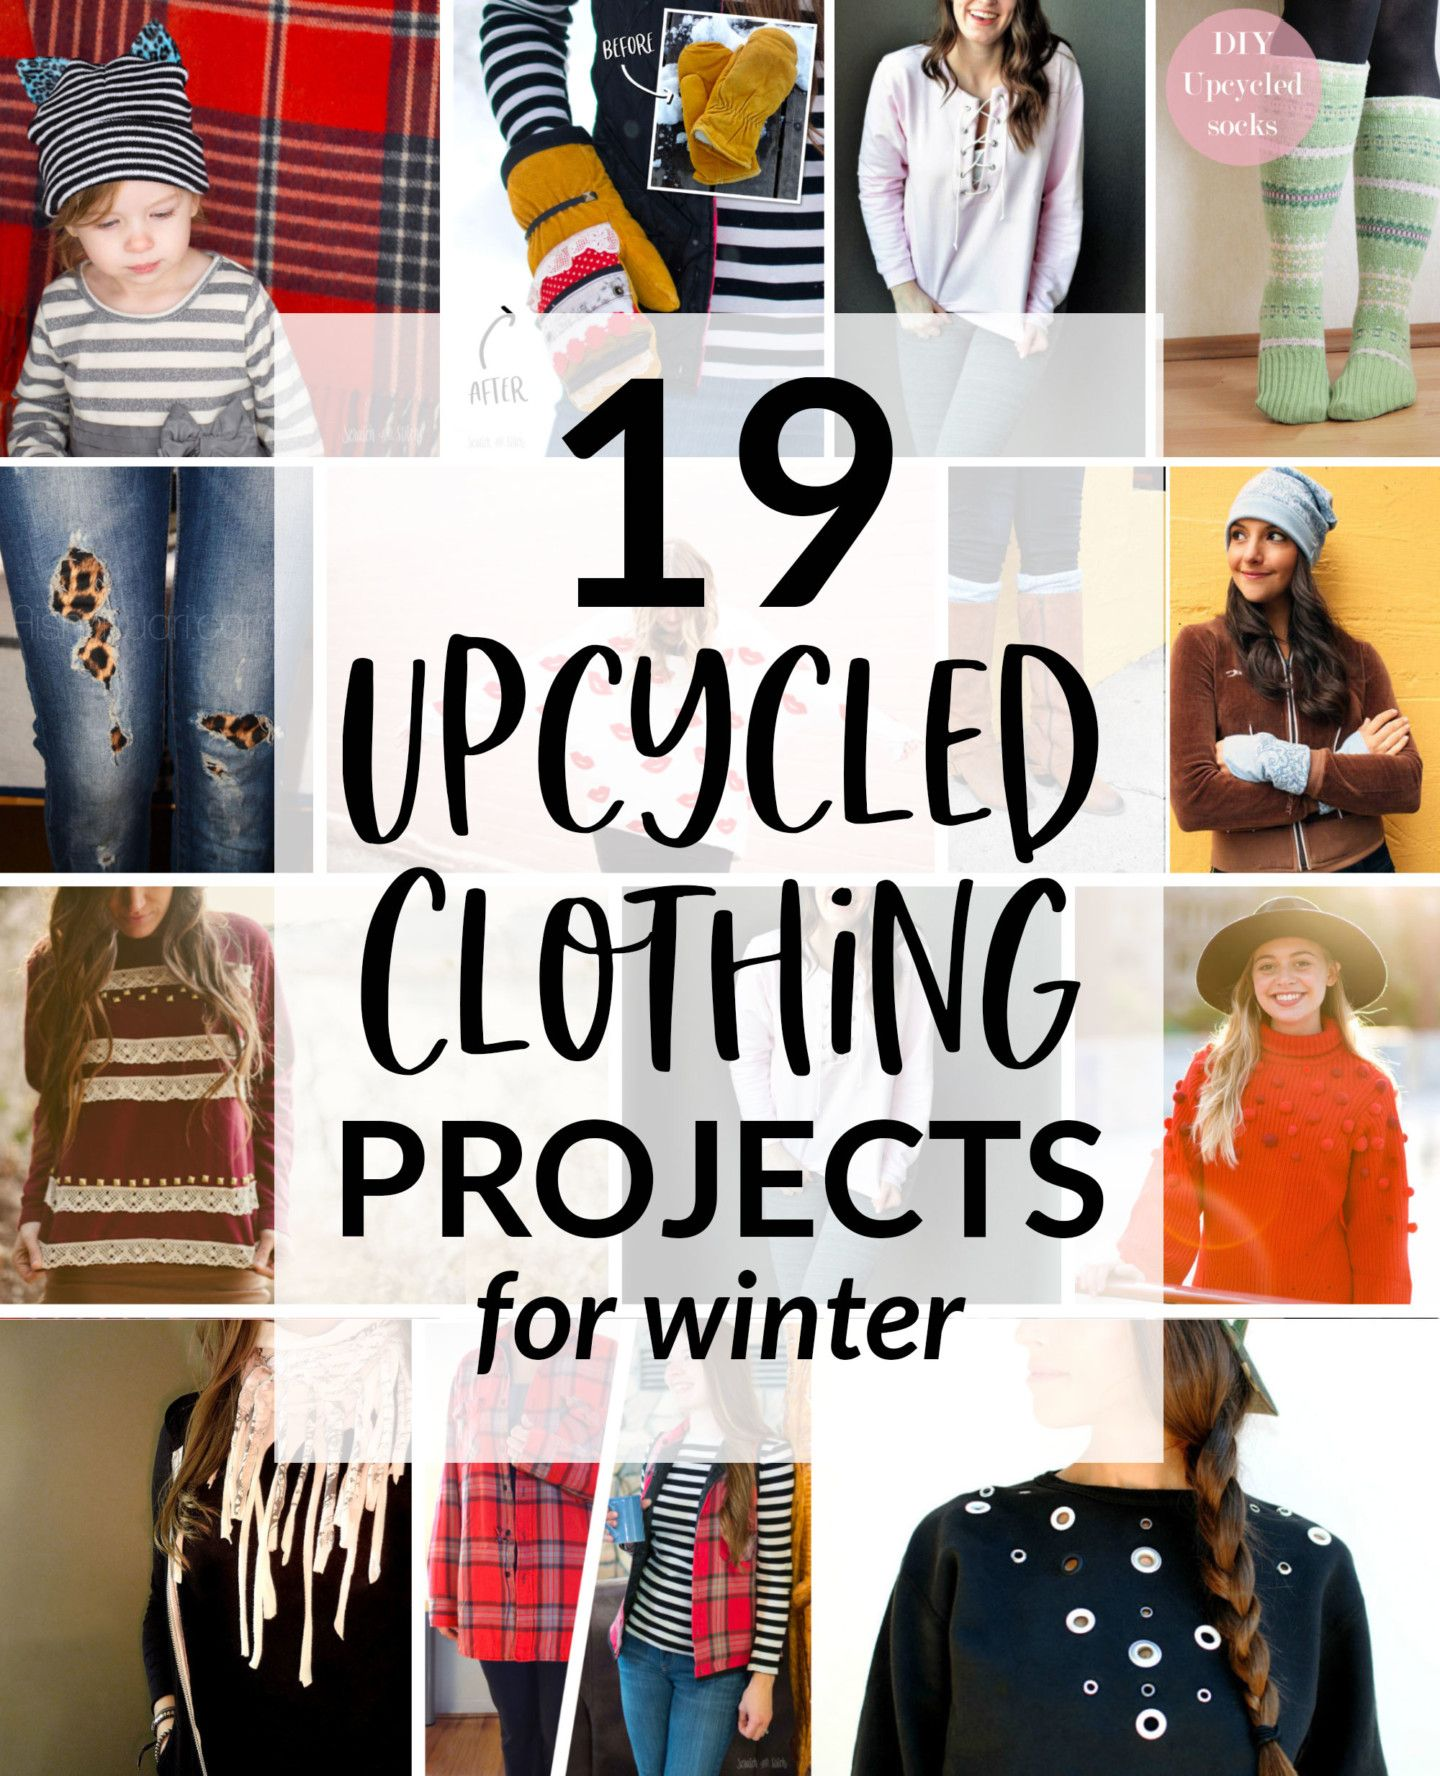 Upcycled Clothing 19 Winter Refashion Projects To Warm Up This Winter Refashion Clothes Upcycling Upcycle Clothes Upcycle Clothes Diy